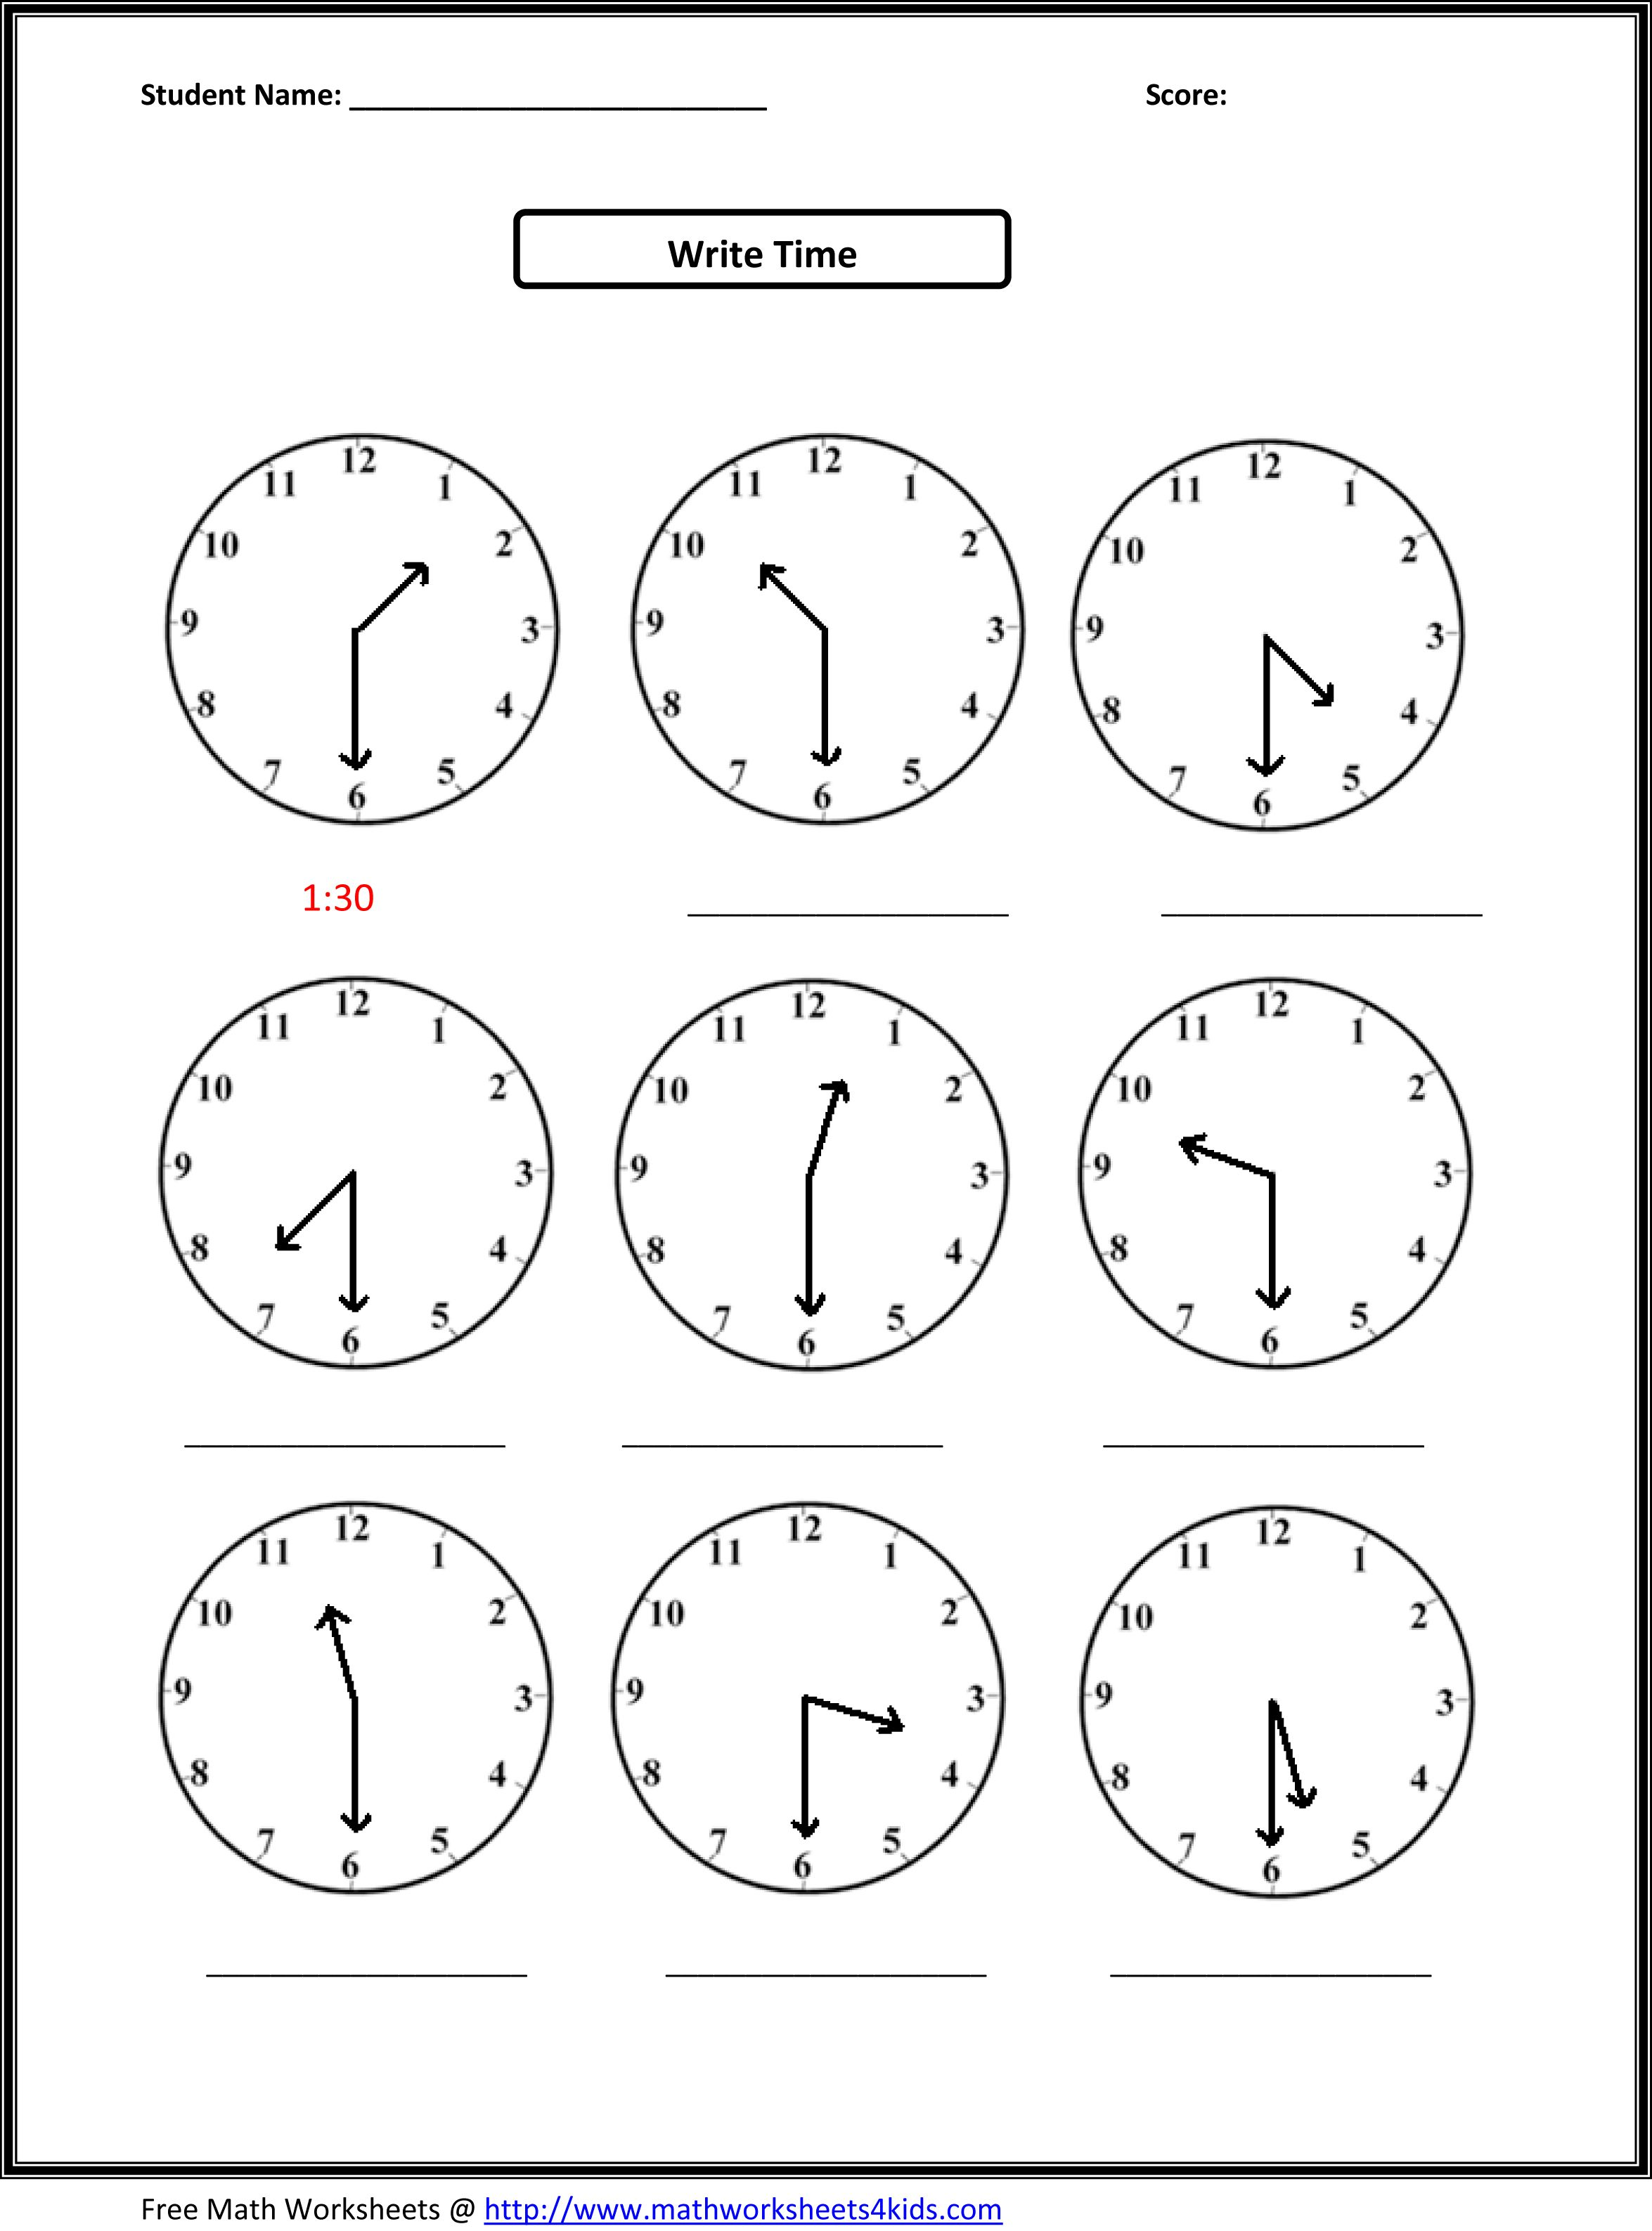 Proatmealus  Prepossessing Worksheet On Time For Grade   Reocurent With Extraordinary Free Printable Telling Time Worksheets Nd Grade  Reocurent With Cool Angle Worksheet Also Area Of A Regular Polygon Worksheet In Addition Th Grade Proportions Worksheet And Acceleration Practice Problems Worksheet As Well As Nd Grade Fun Worksheets Additionally Landforms And Bodies Of Water Worksheet From Reocurentcom With Proatmealus  Extraordinary Worksheet On Time For Grade   Reocurent With Cool Free Printable Telling Time Worksheets Nd Grade  Reocurent And Prepossessing Angle Worksheet Also Area Of A Regular Polygon Worksheet In Addition Th Grade Proportions Worksheet From Reocurentcom